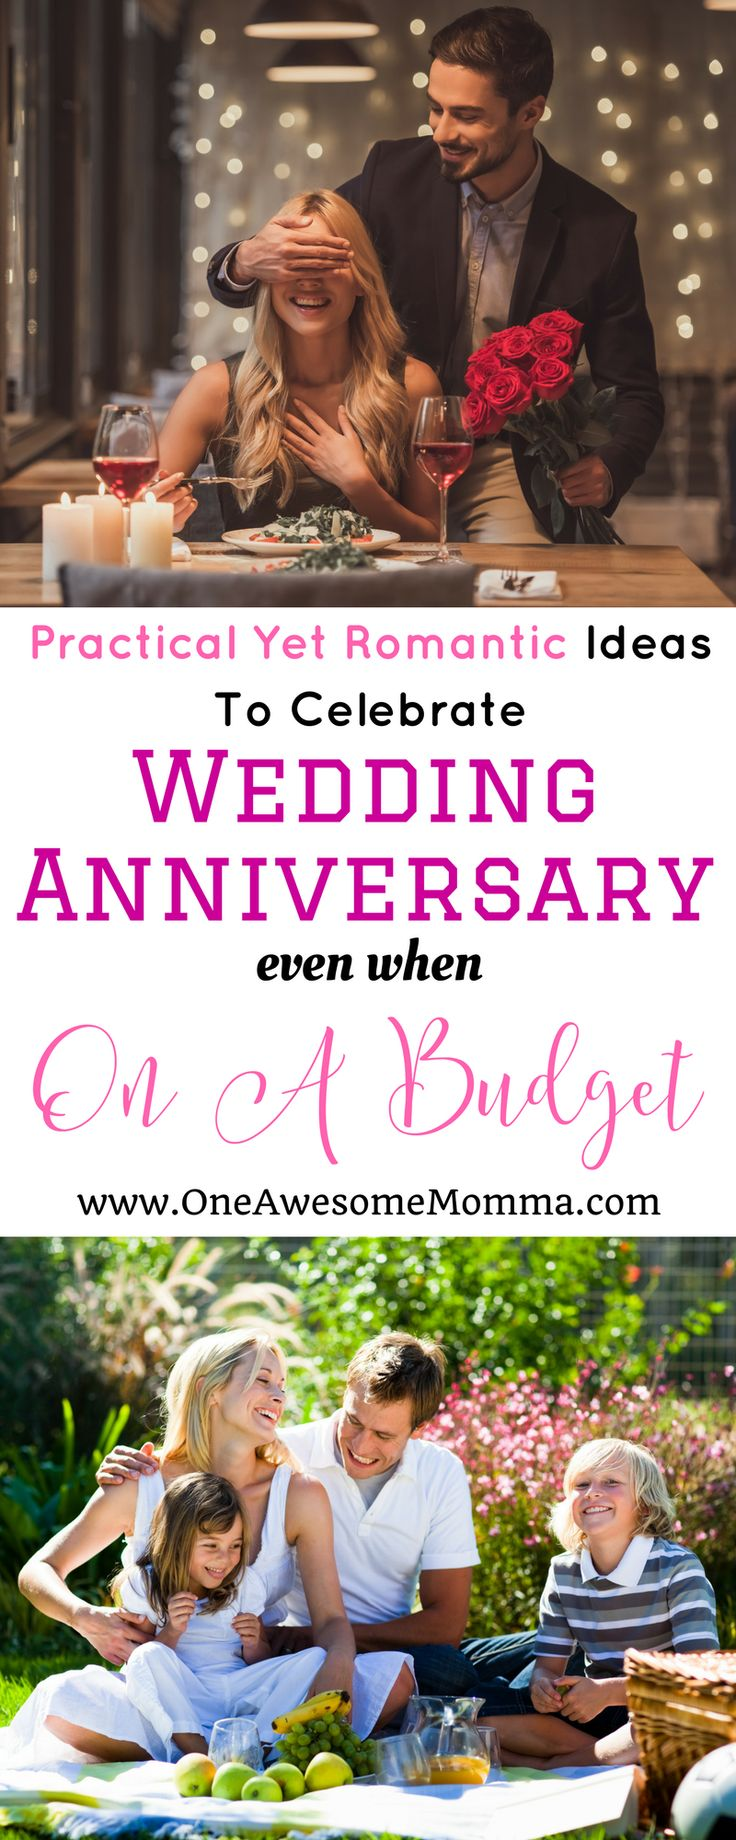 Practical Yet Ideas To Celebrate Wedding Anniversary On A Budget